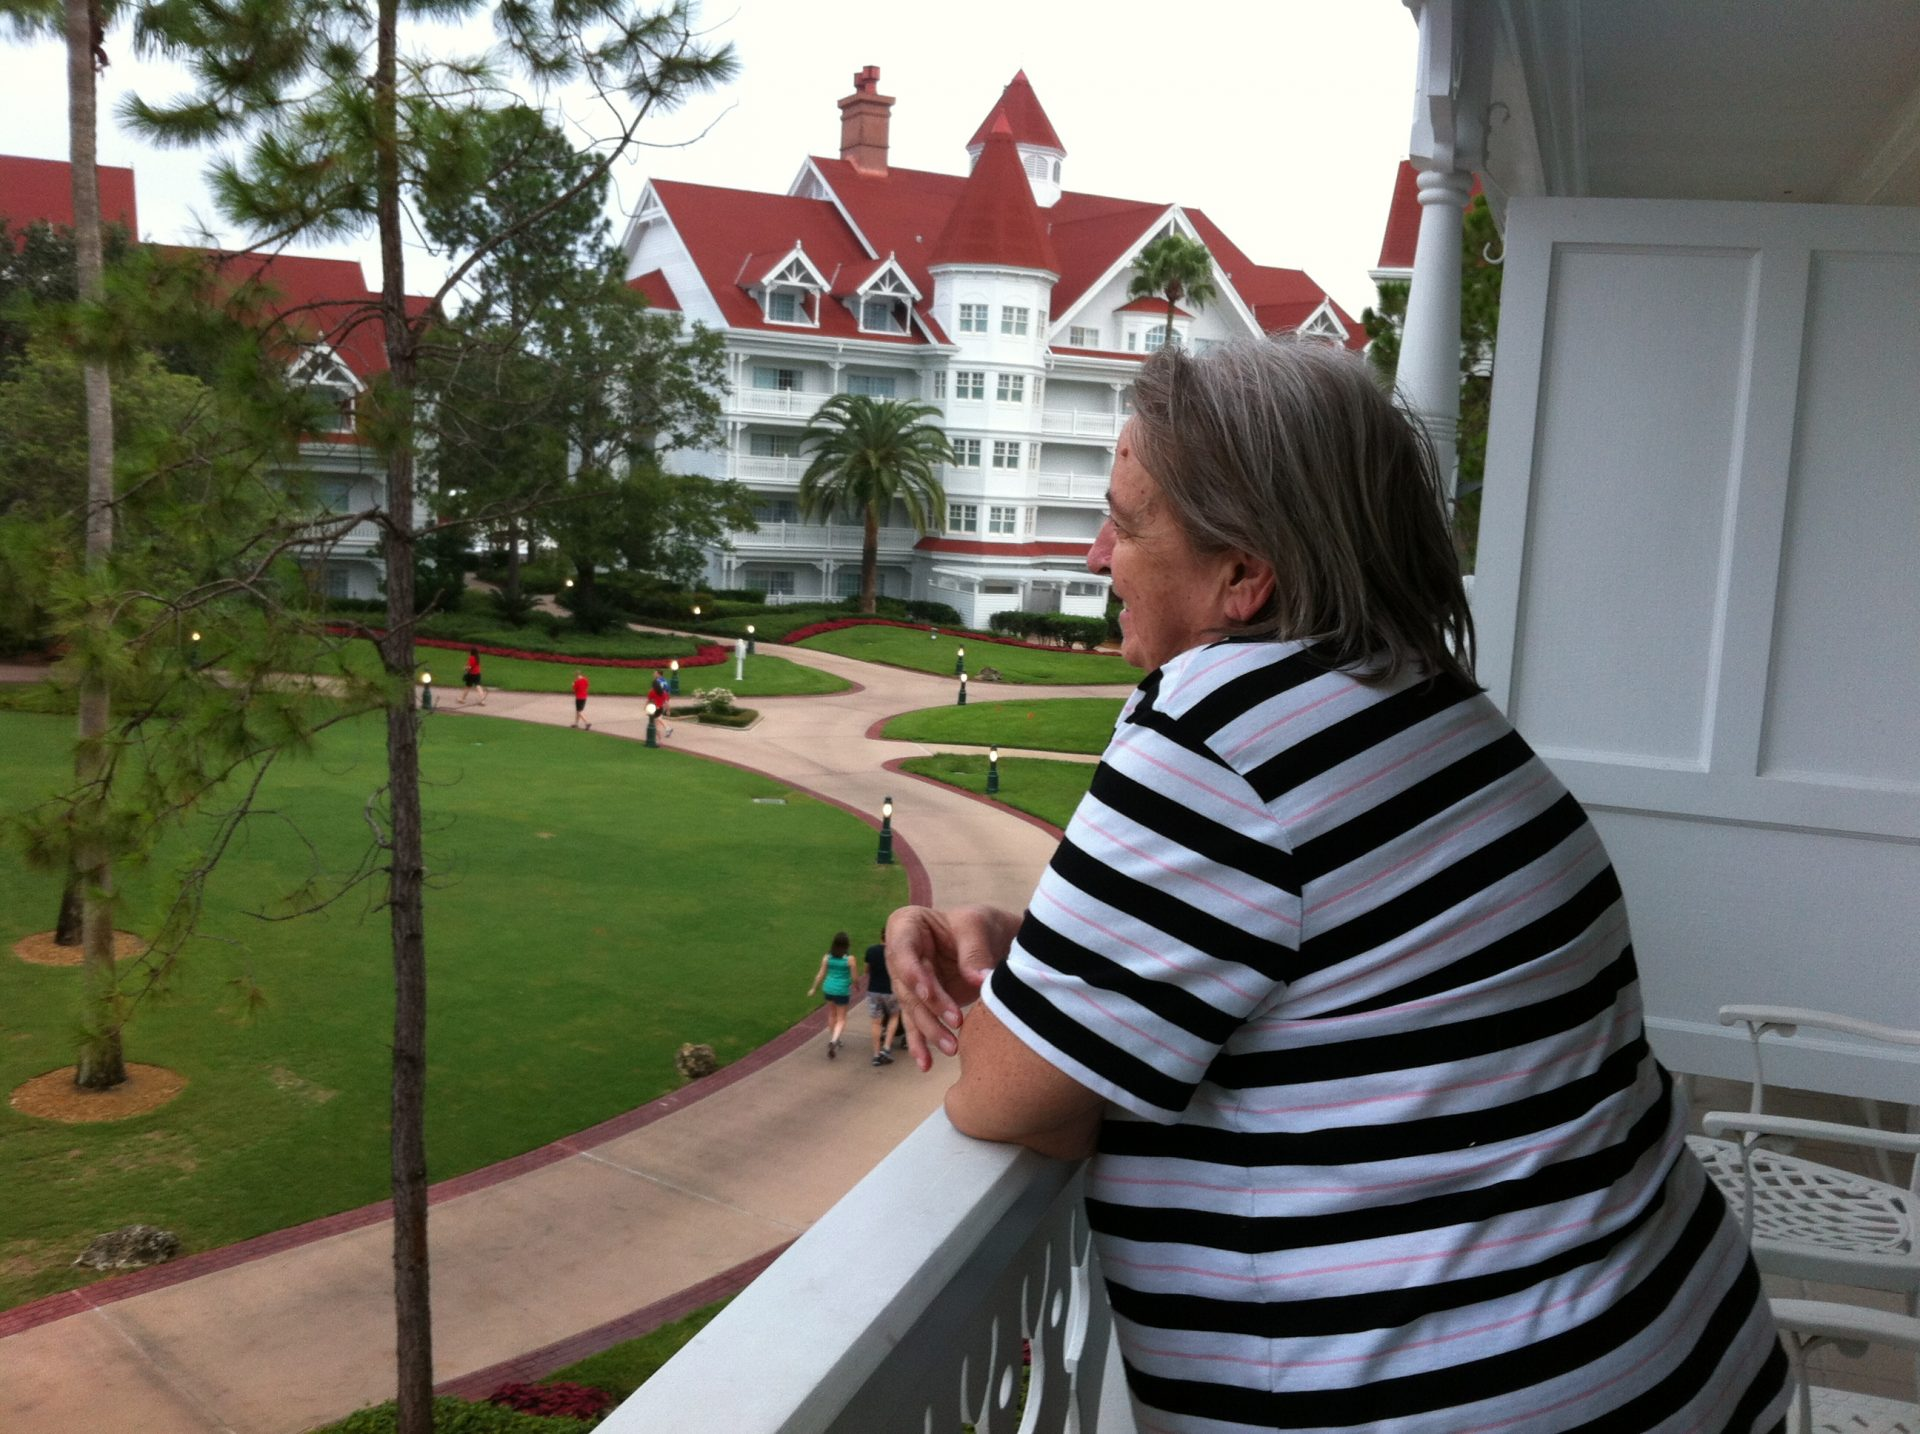 Grammy at the Grand Floridian